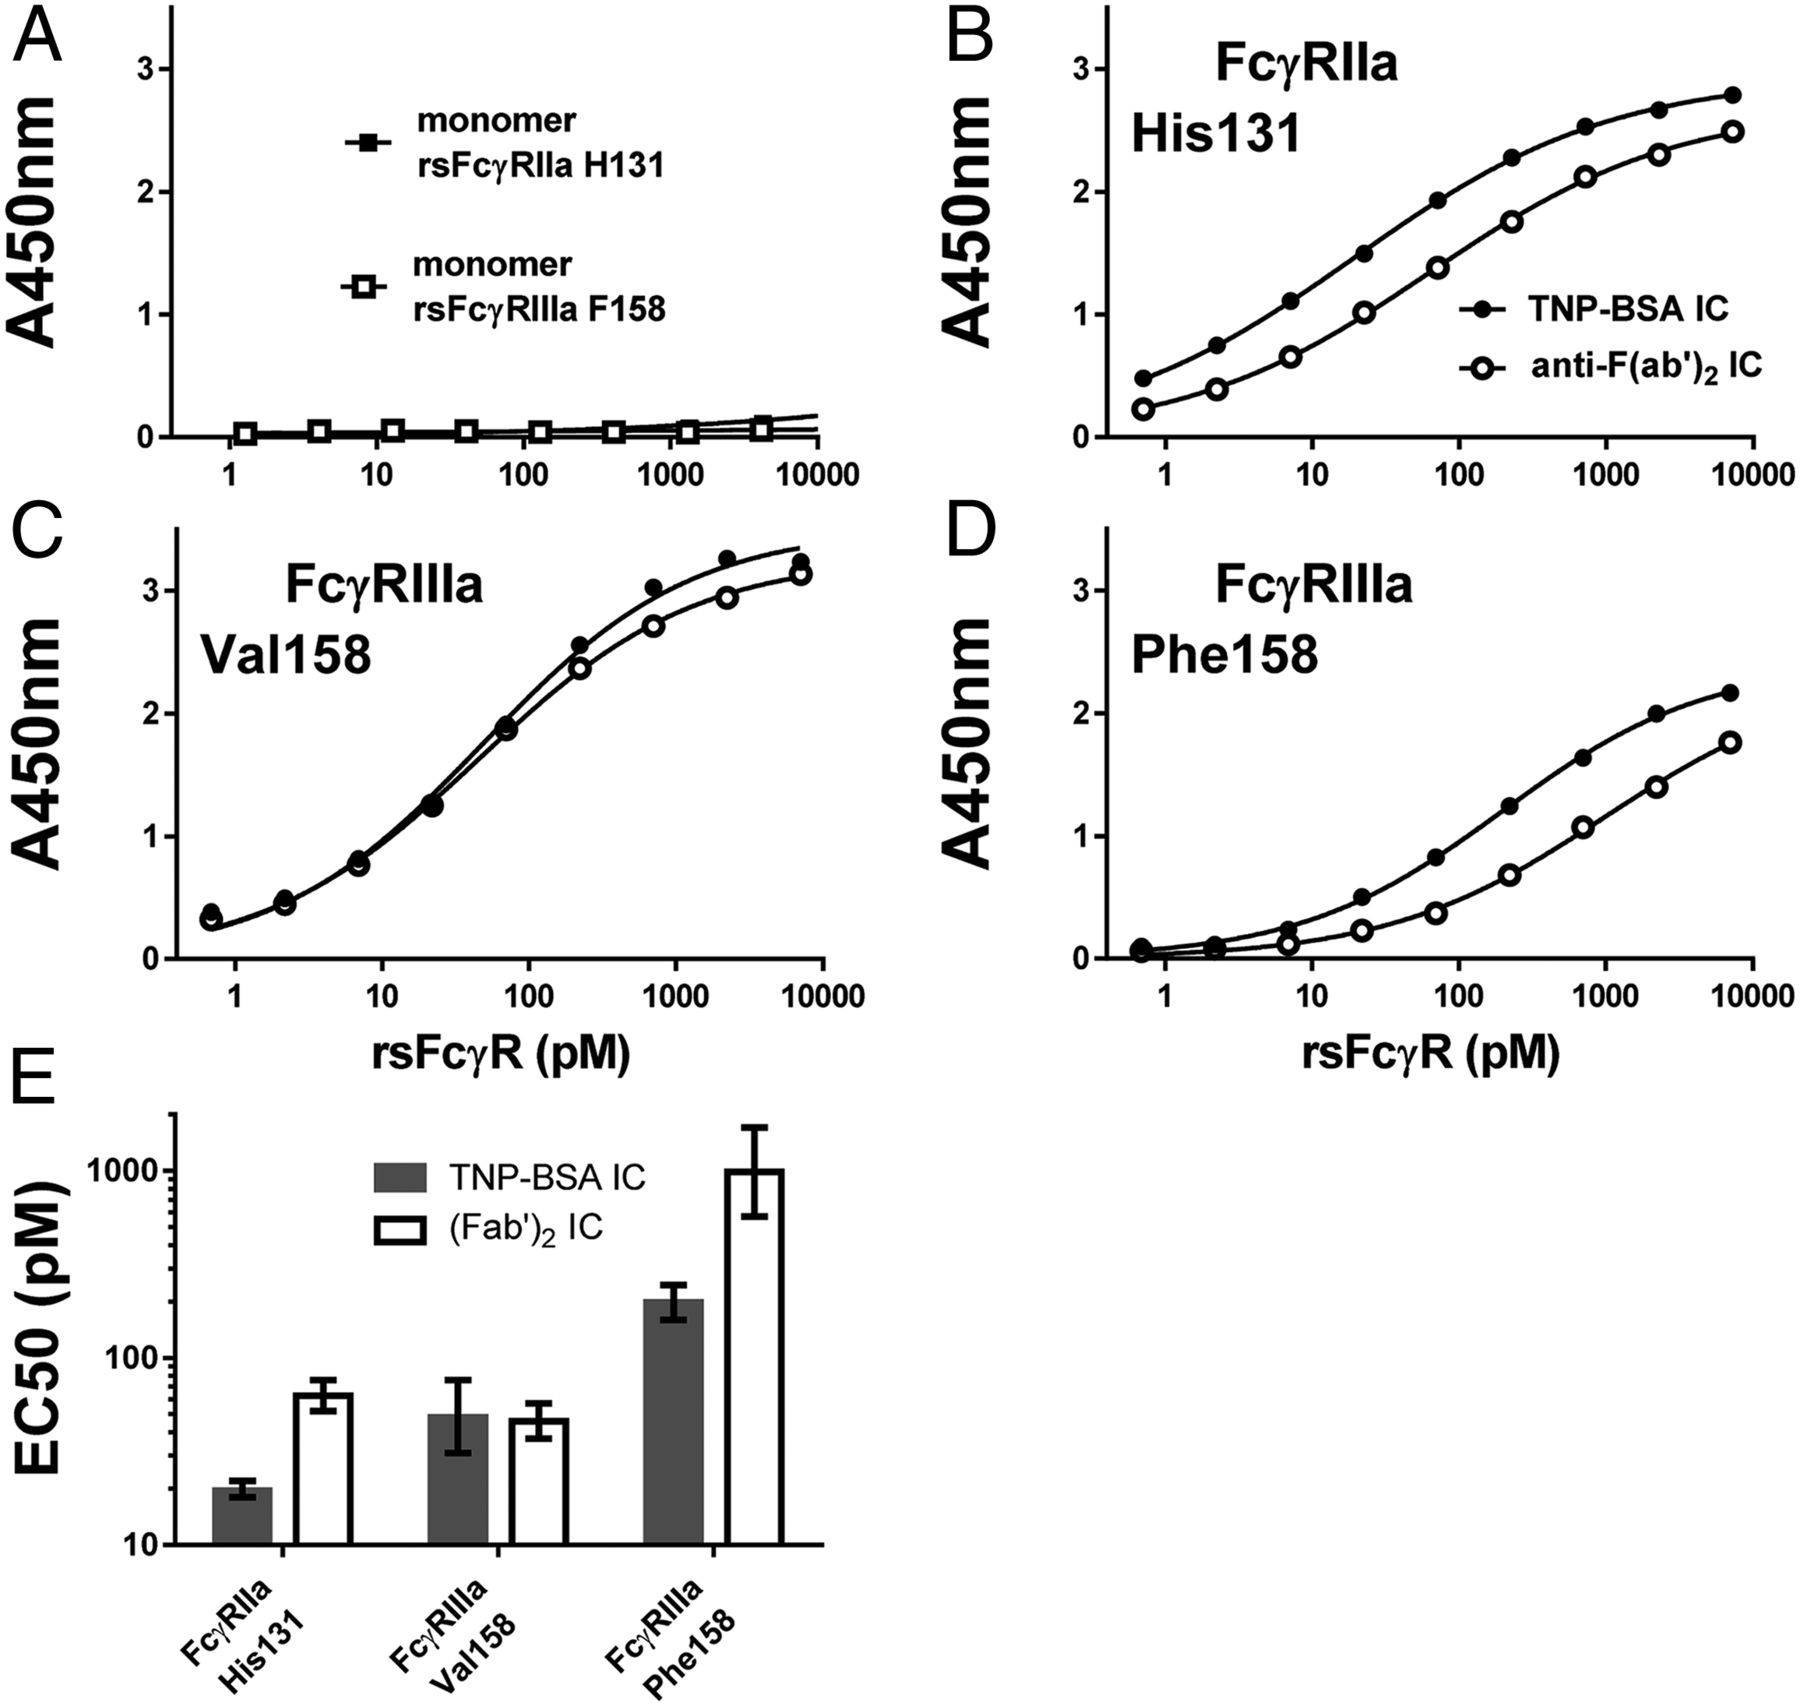 Dimeric FcγR Ectodomains as Probes of the Fc Receptor